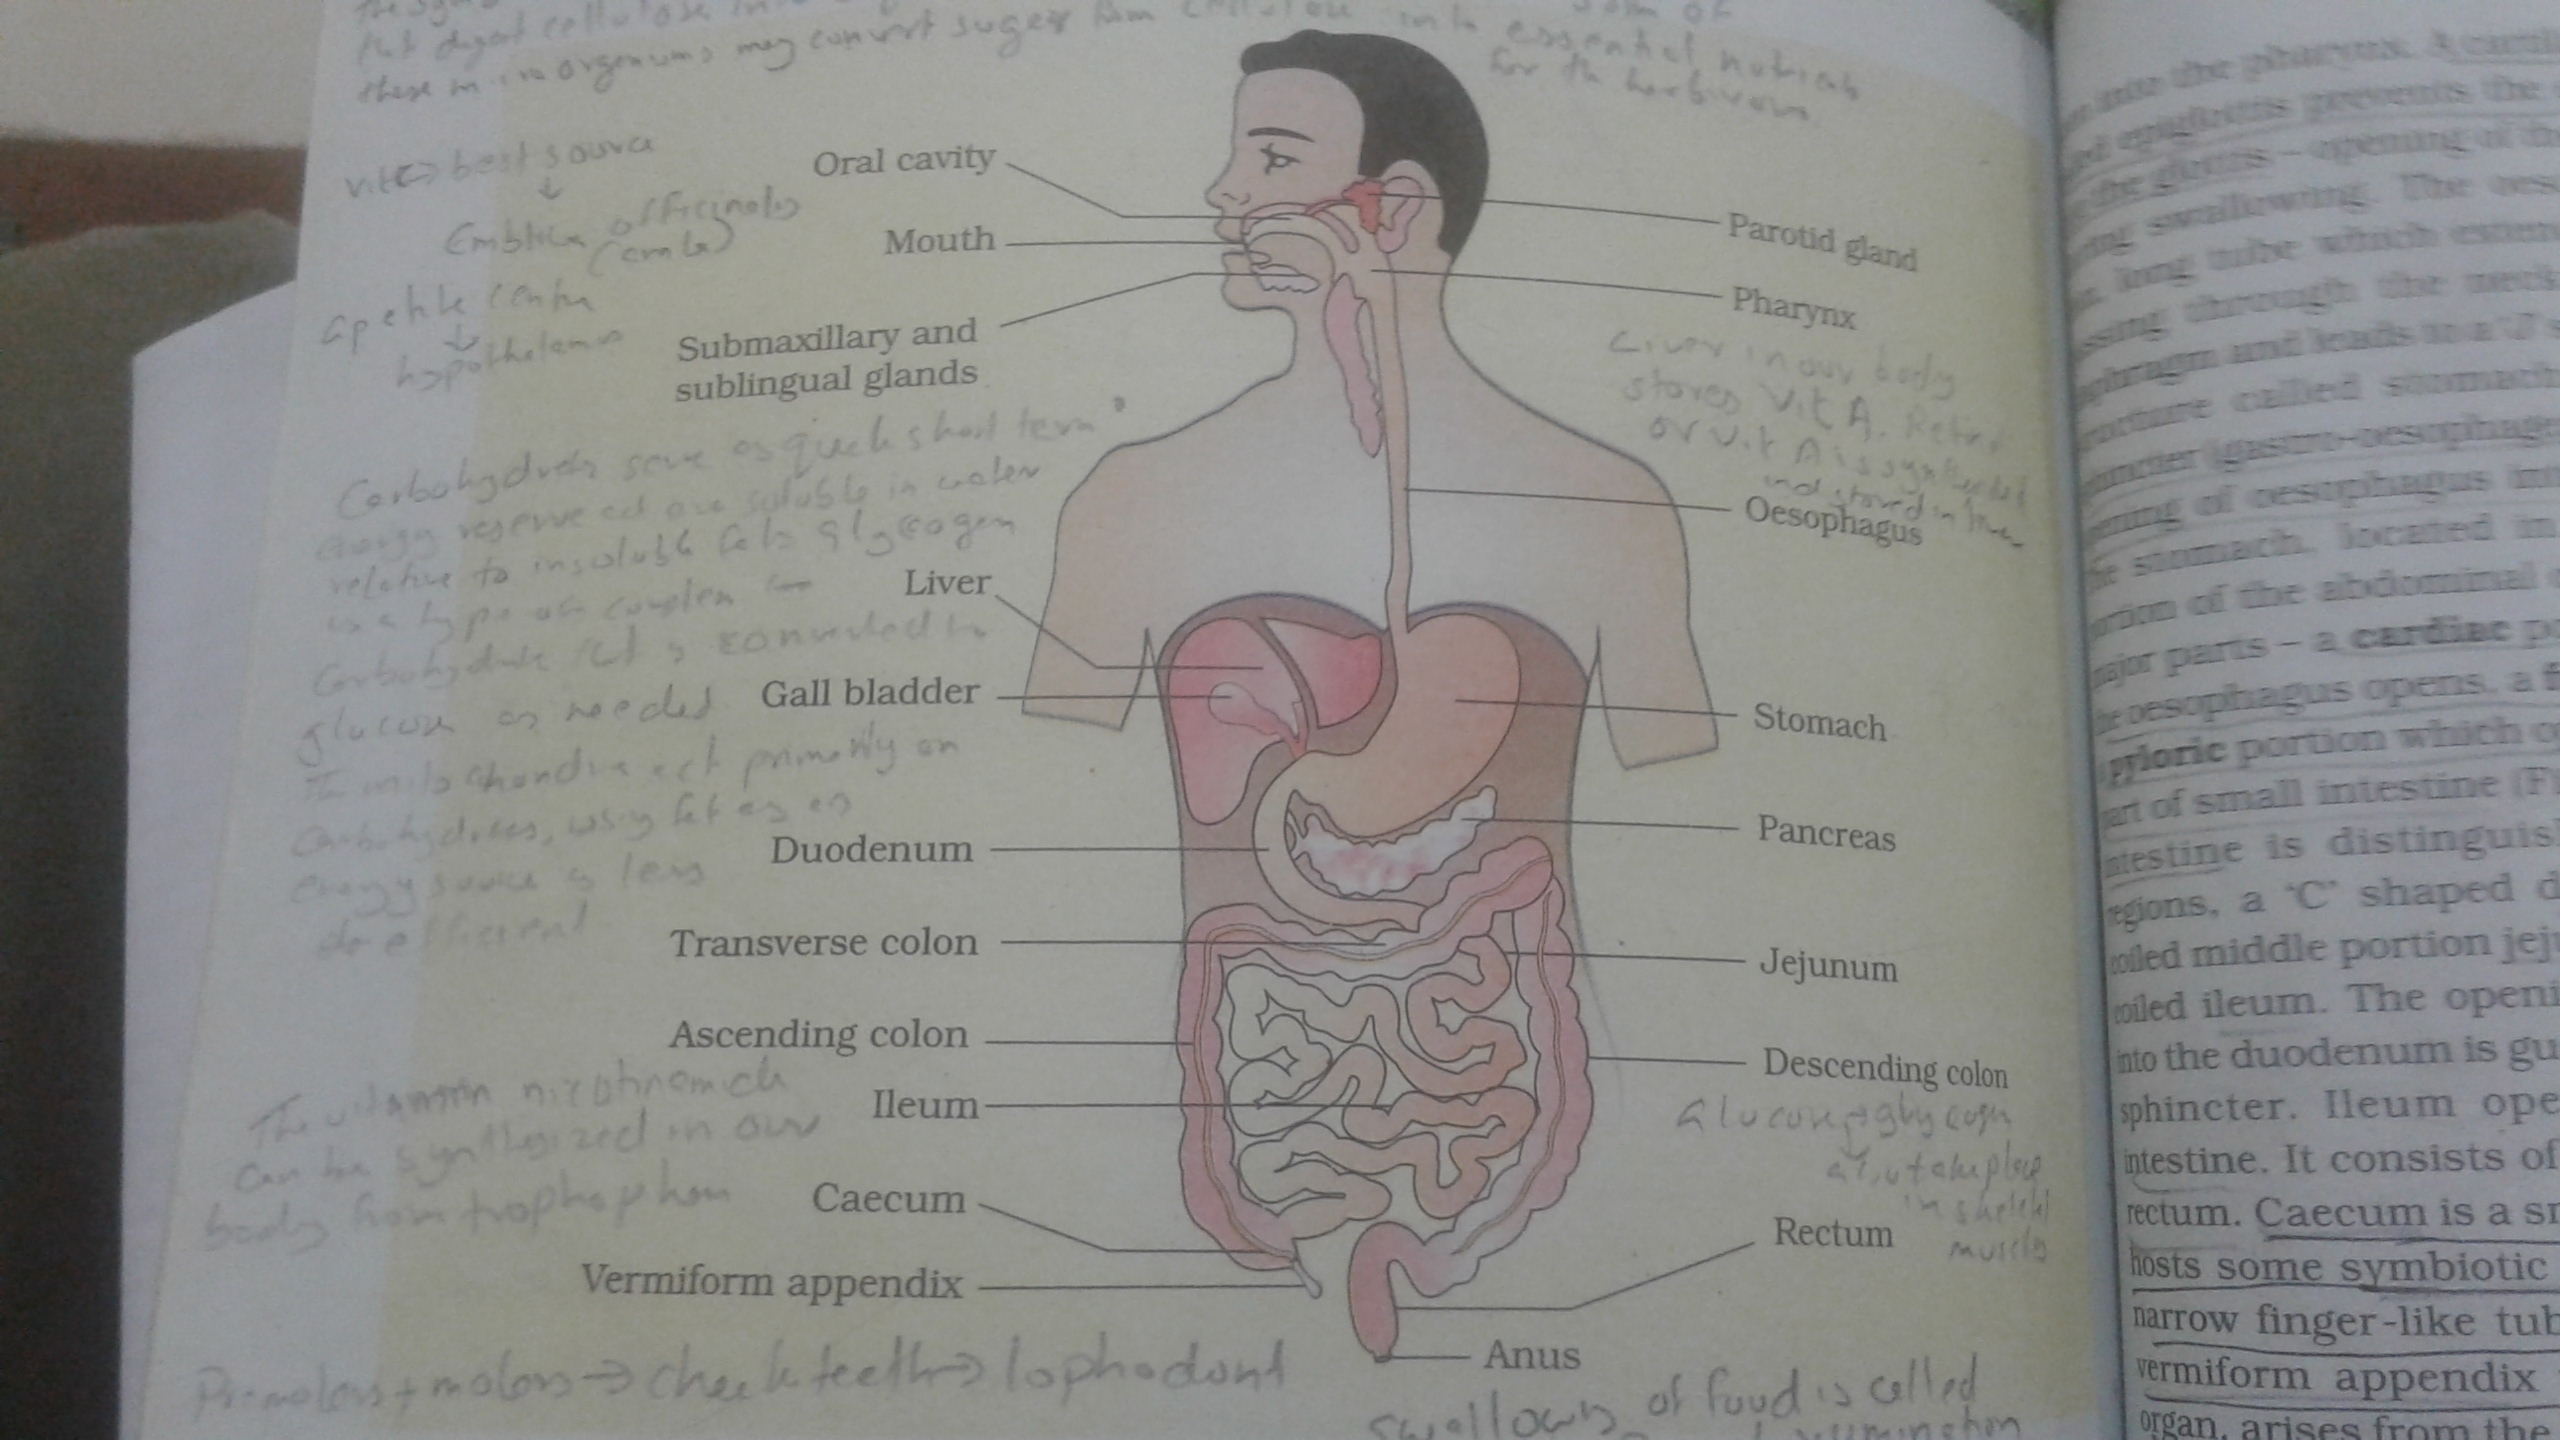 Draw A Diagram Of Human Alimentary Canal Showing Duodenum Small